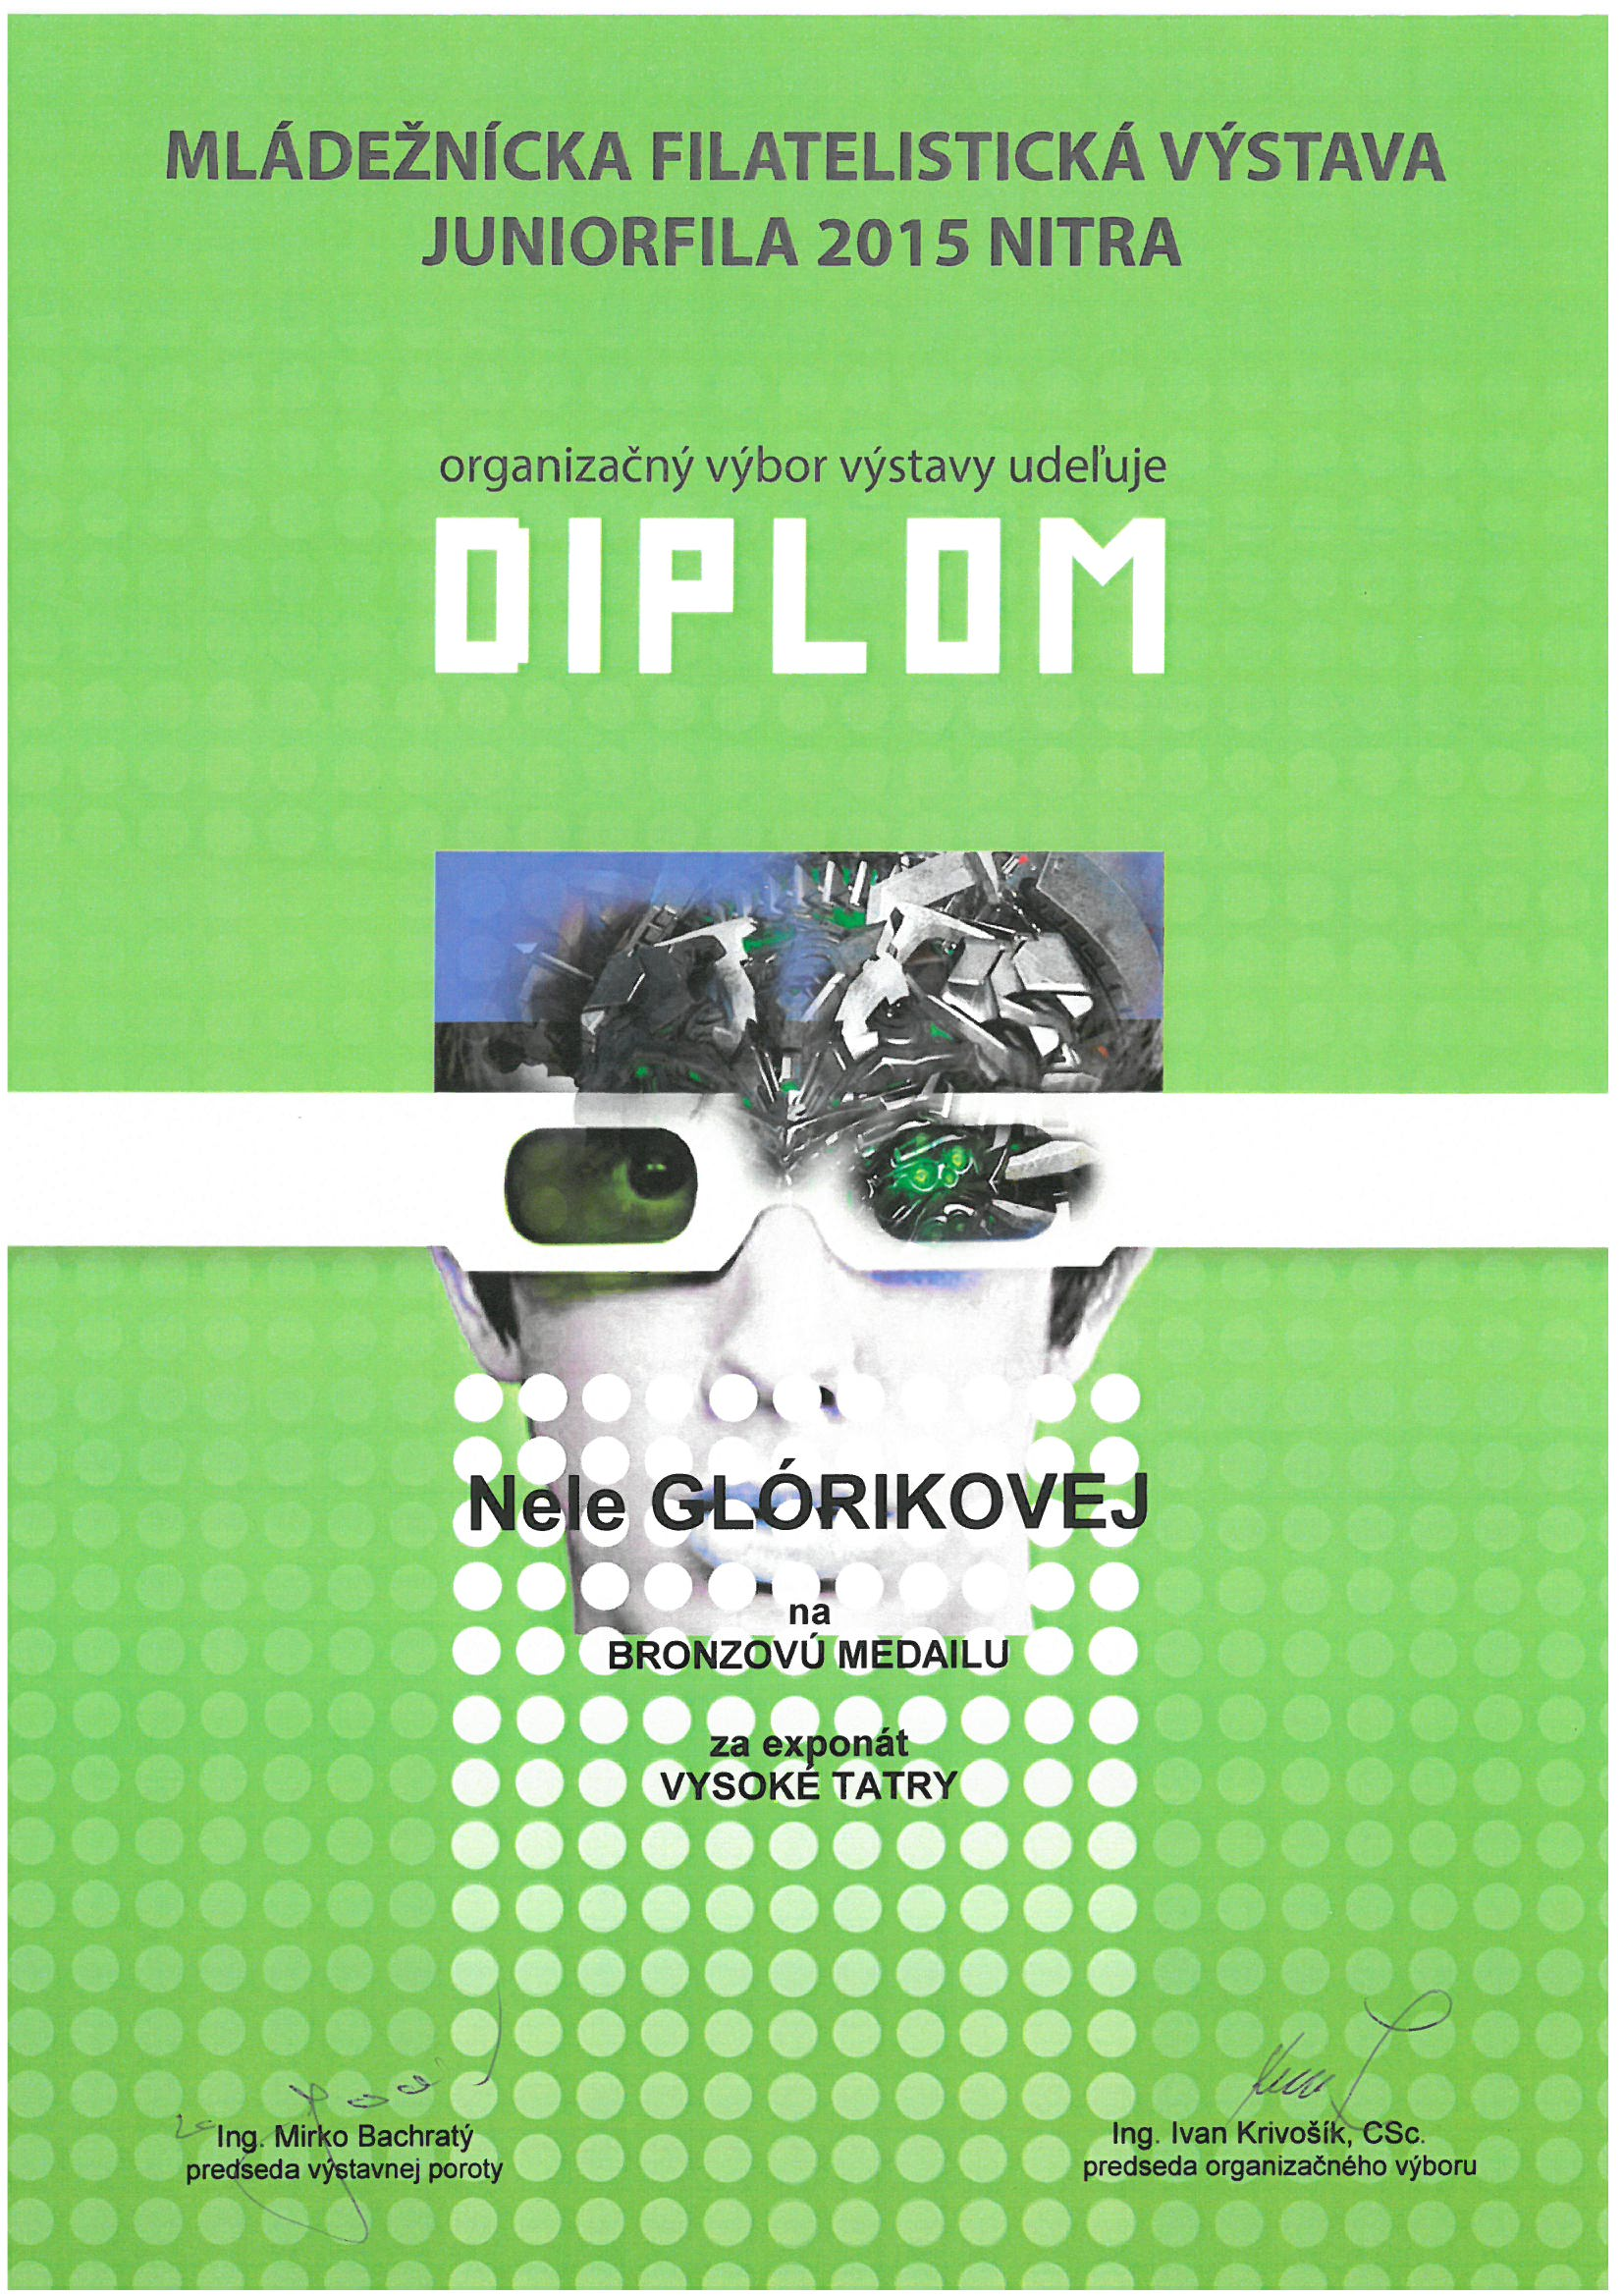 JUNIORFILA 2015 diplom